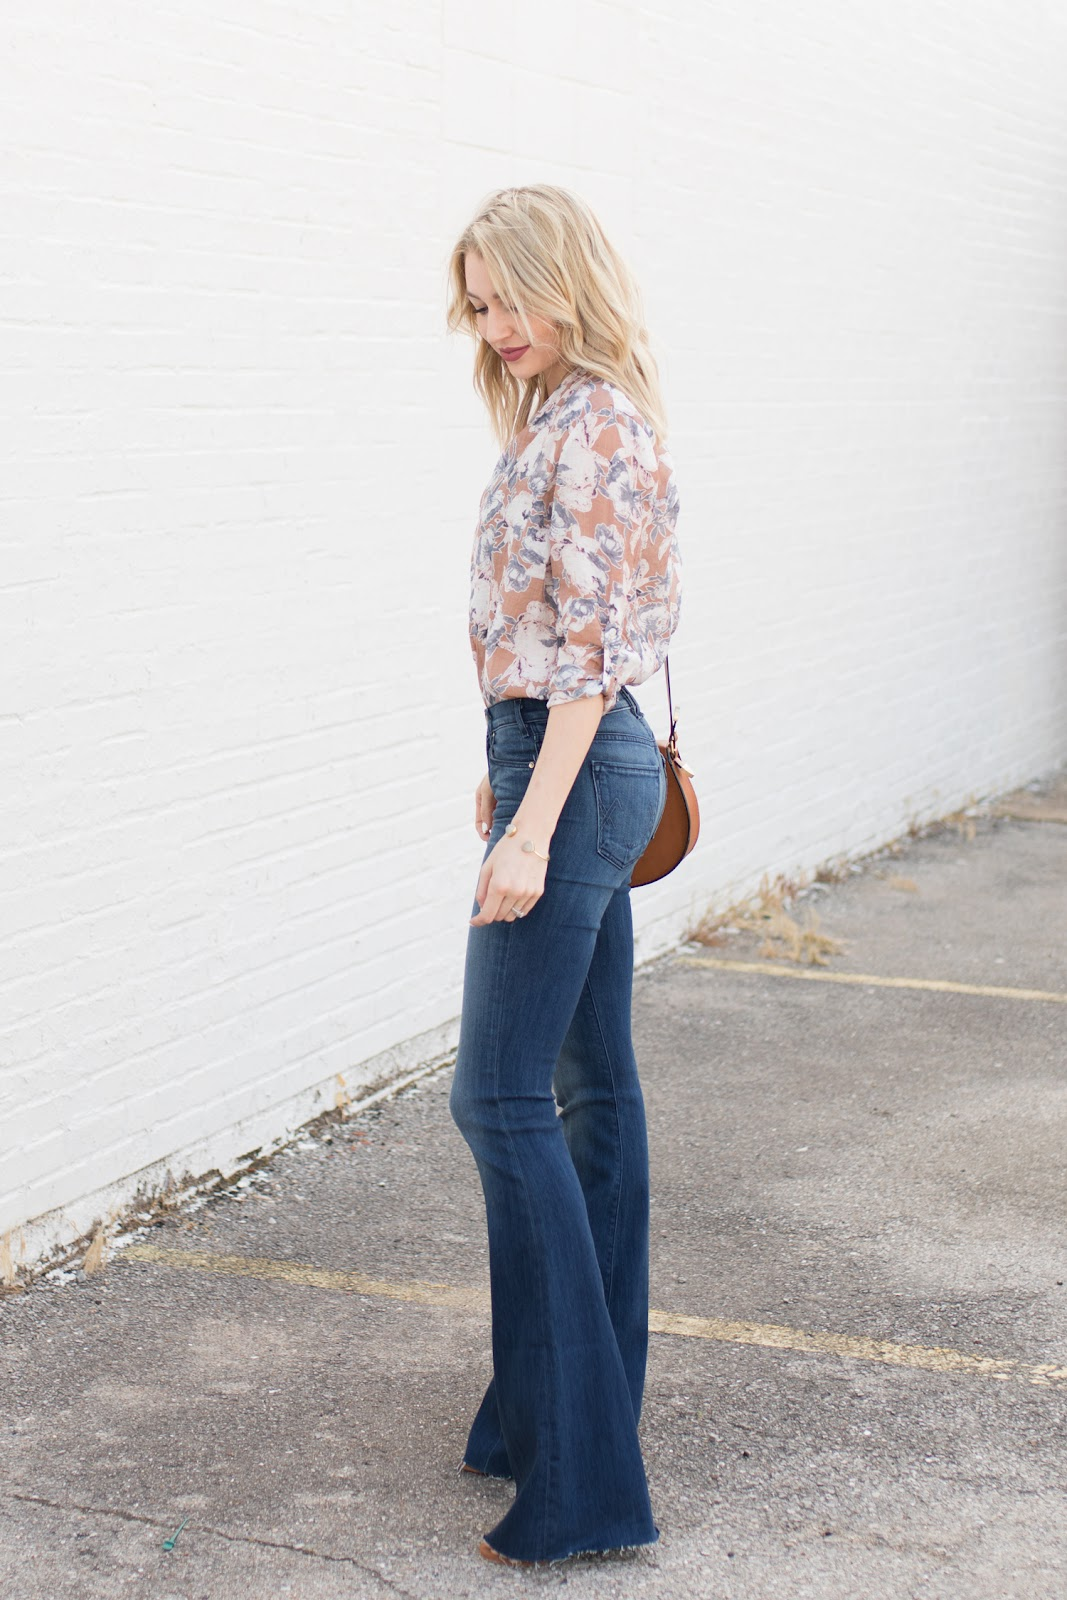 Floral blouse tucked into high-waisted flares